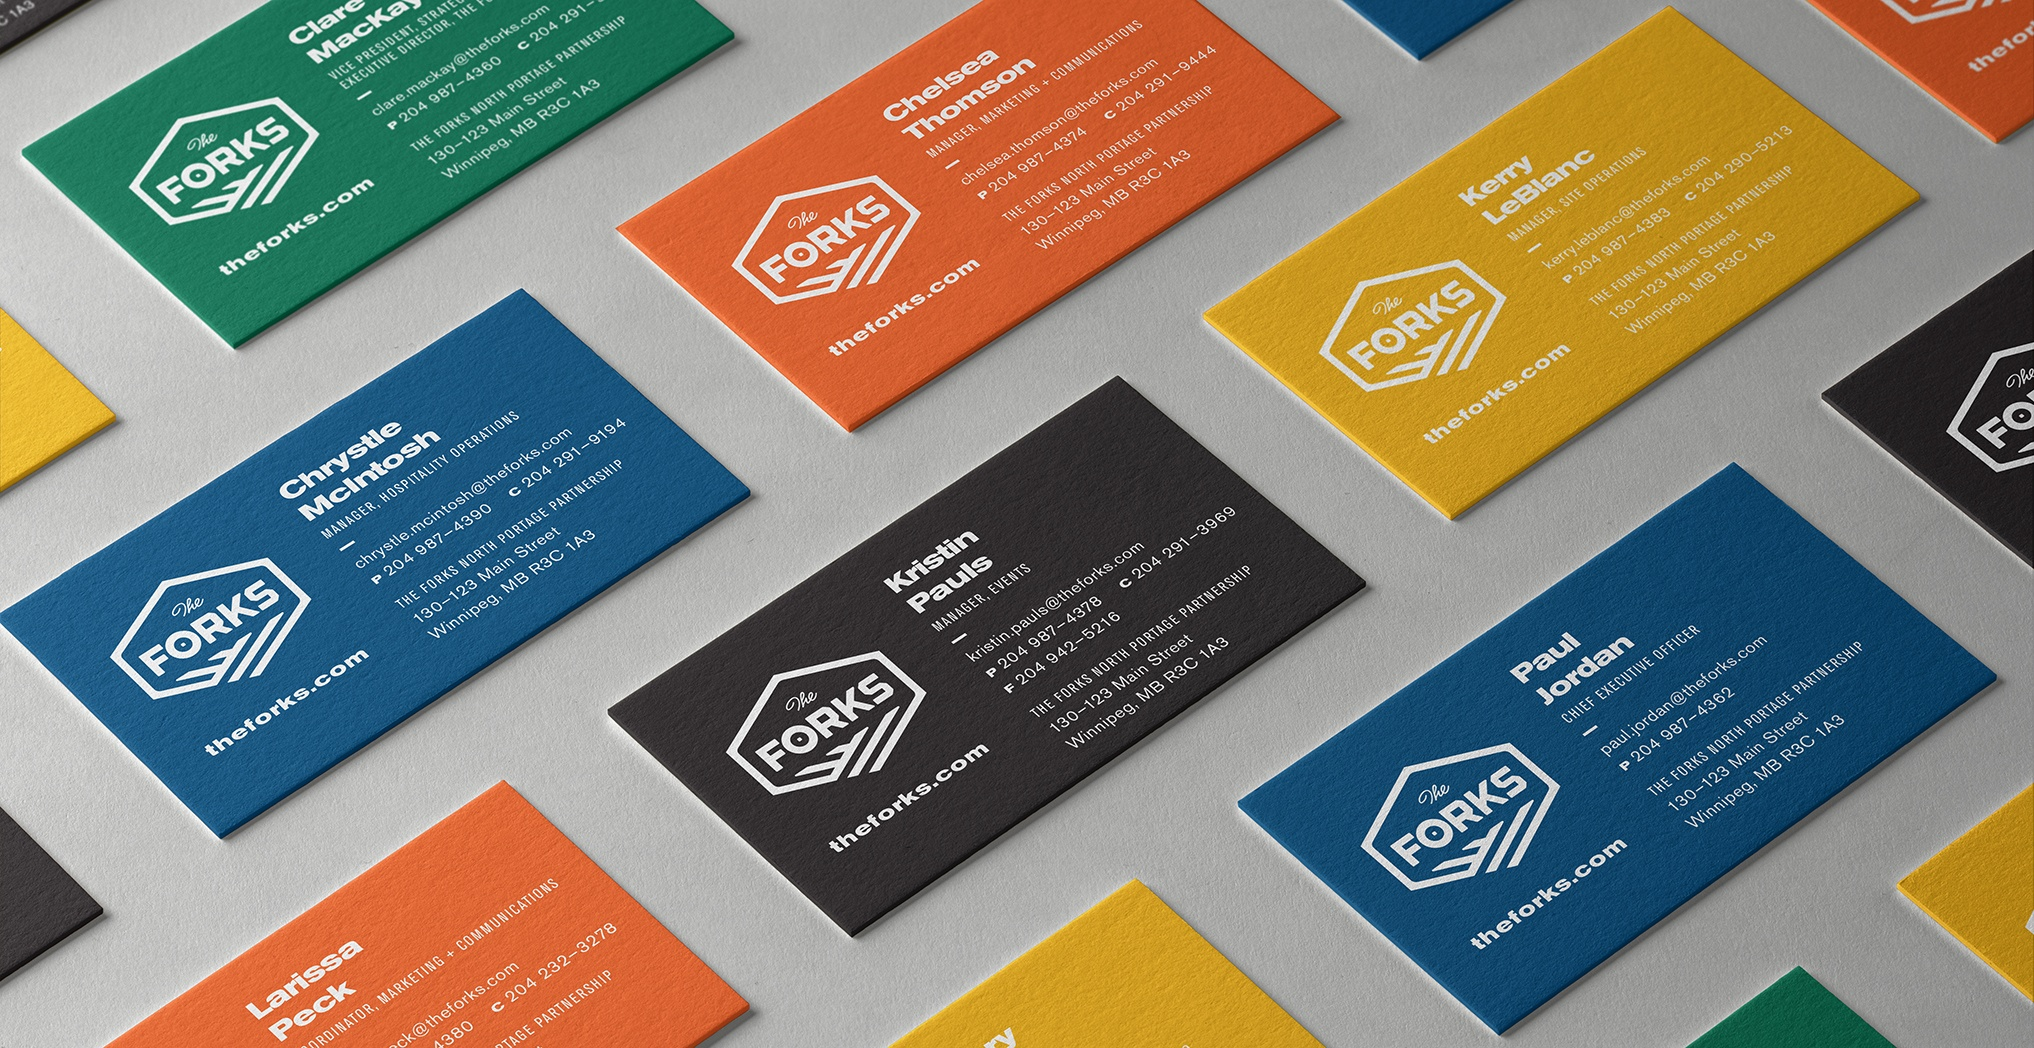 The Forks business cards